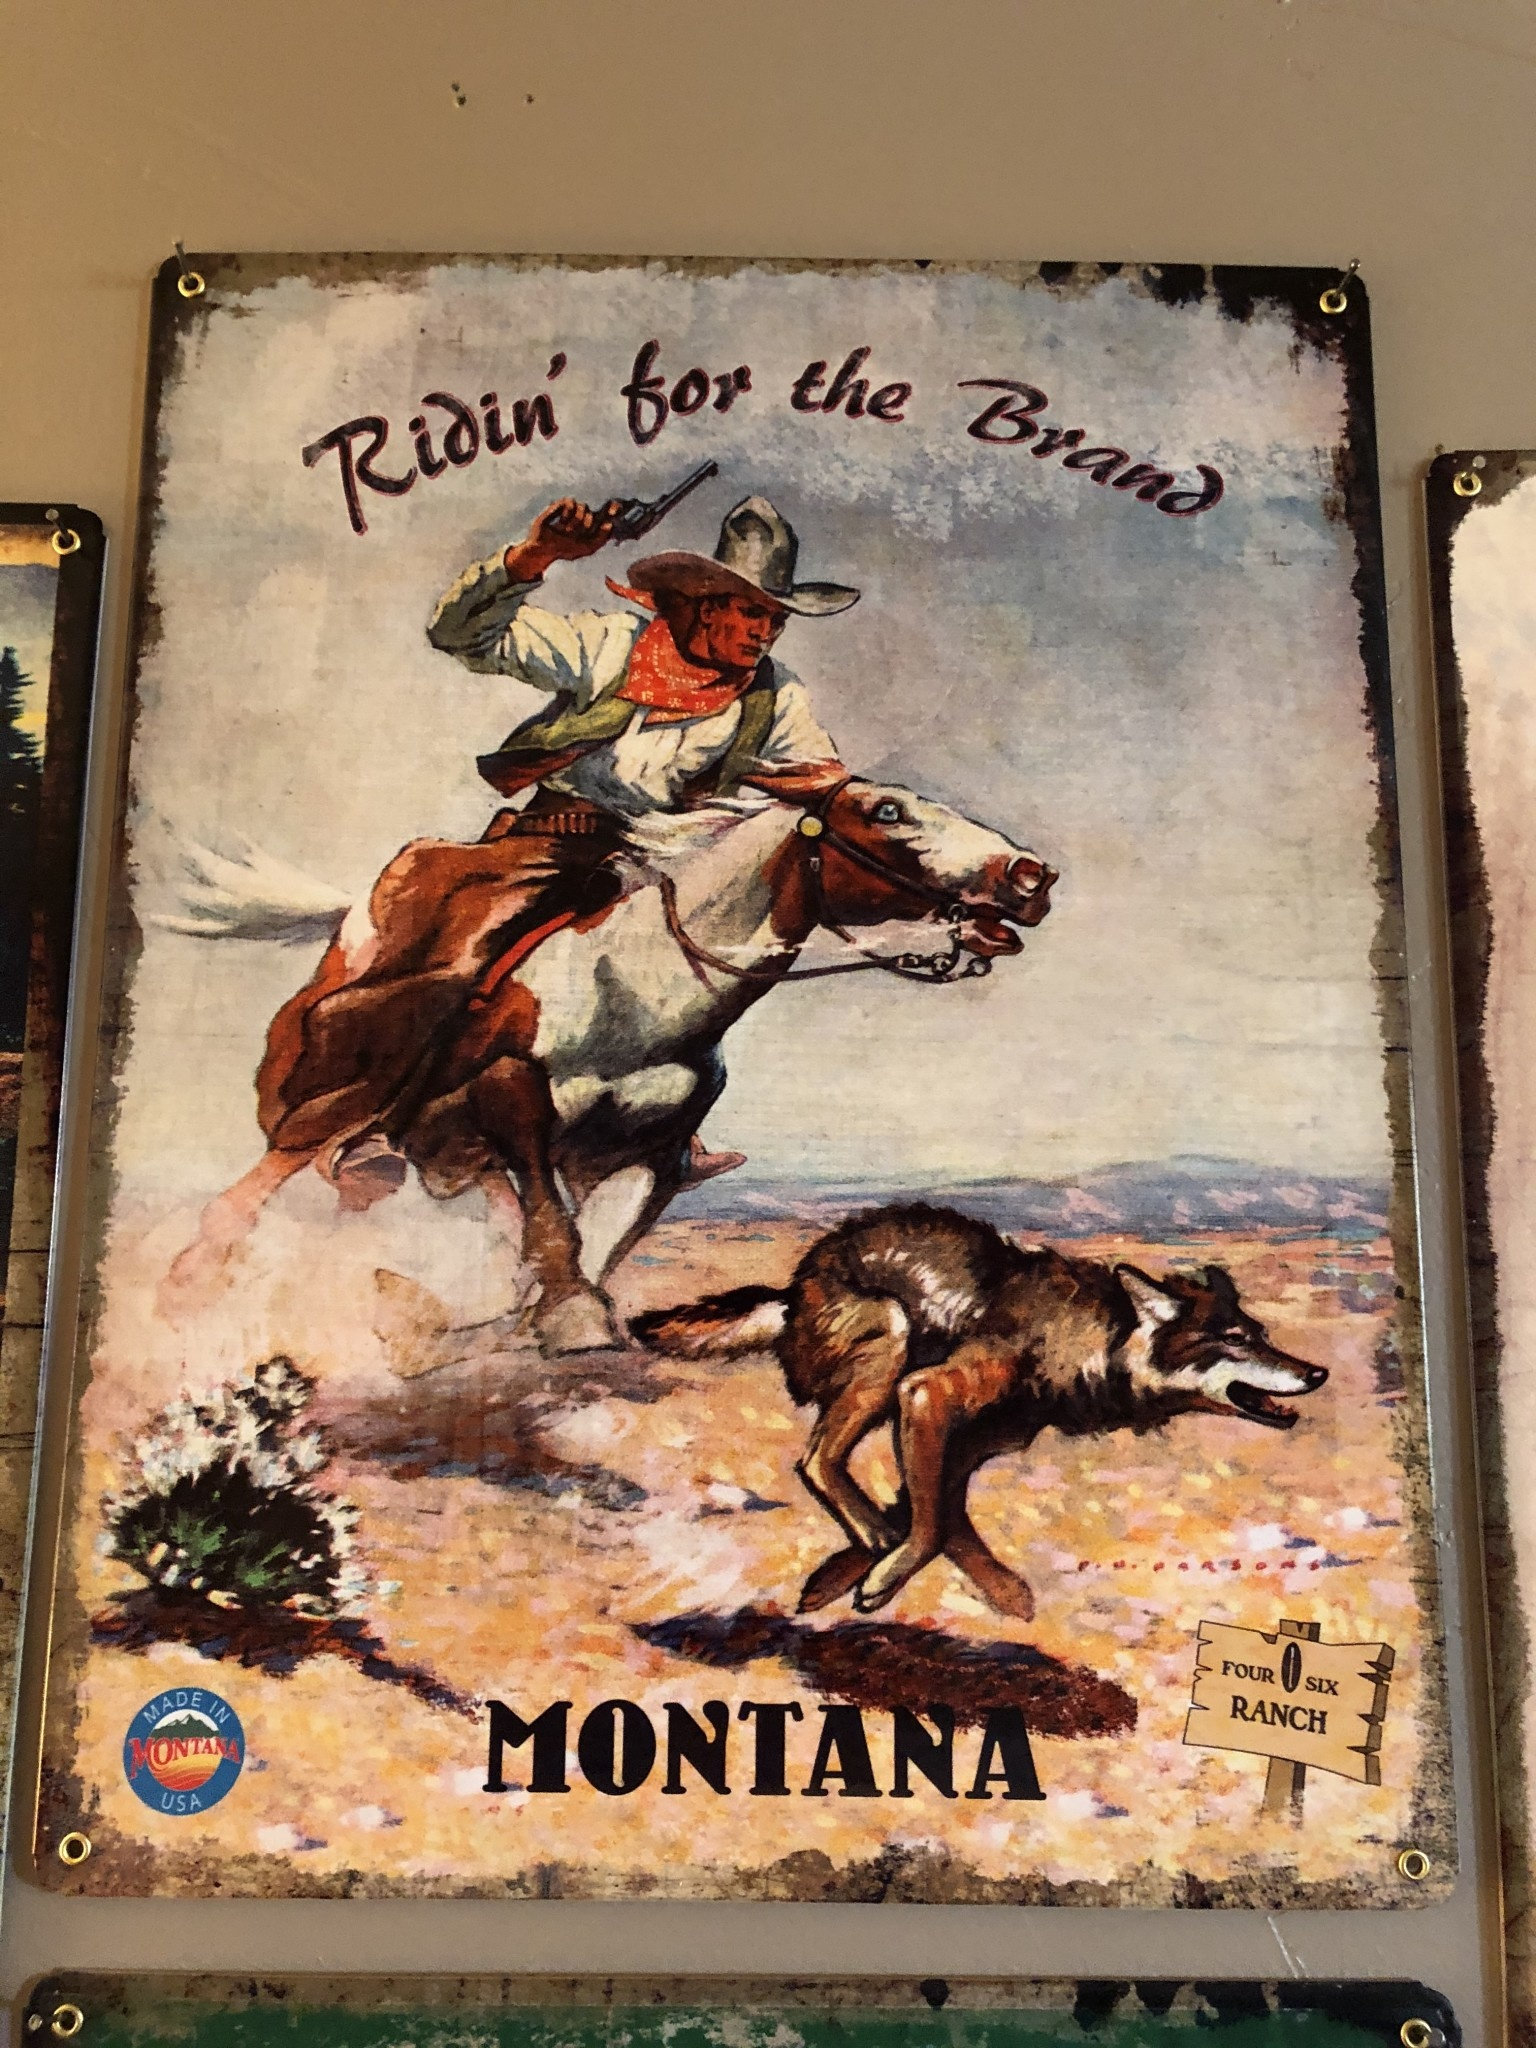 Classic Outdoor Magazines #22 406 Ranch Ridin' the Brand 12x15 Metal Sign